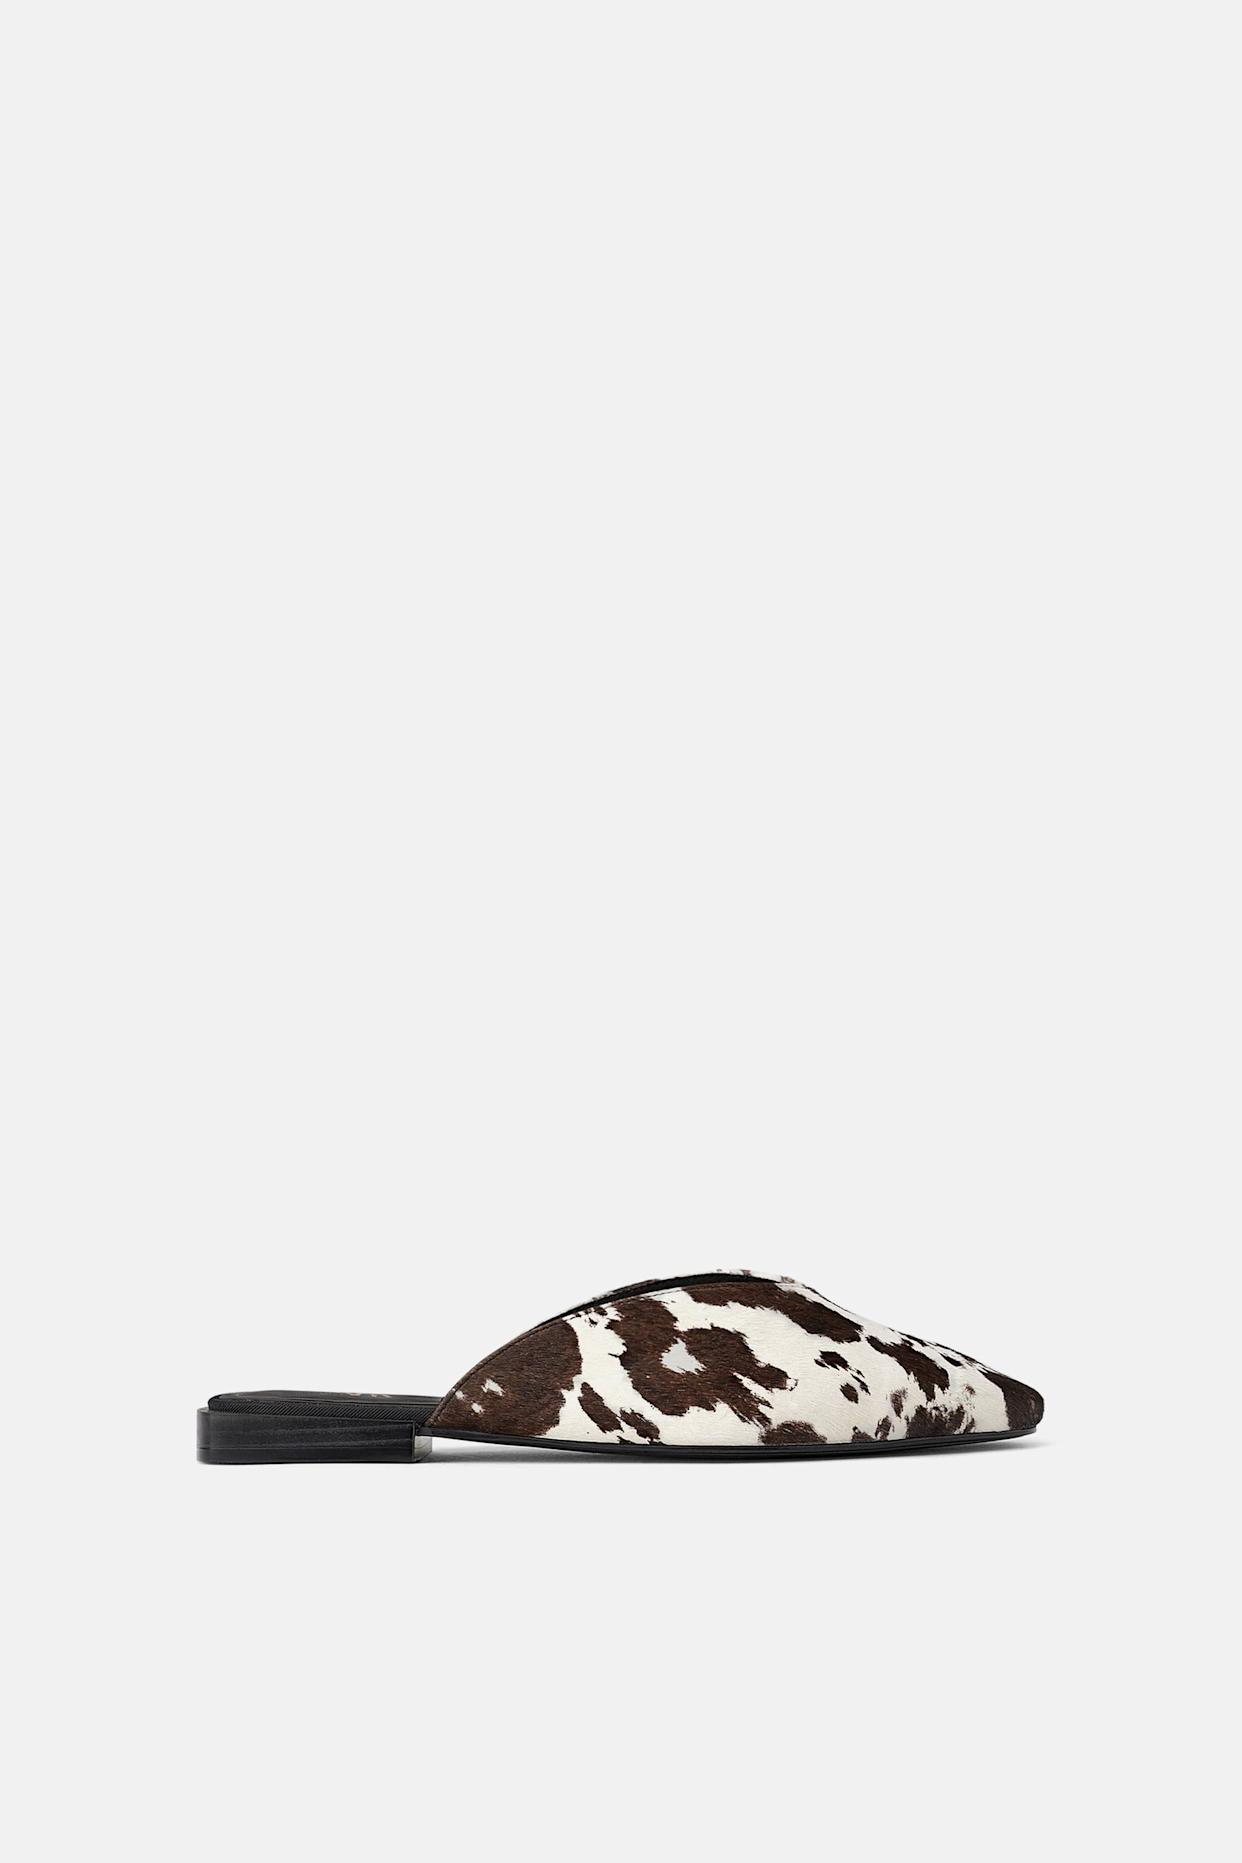 10b3f1454db05 The Only 31 Zara Items NY Girls Are Buying This Summer